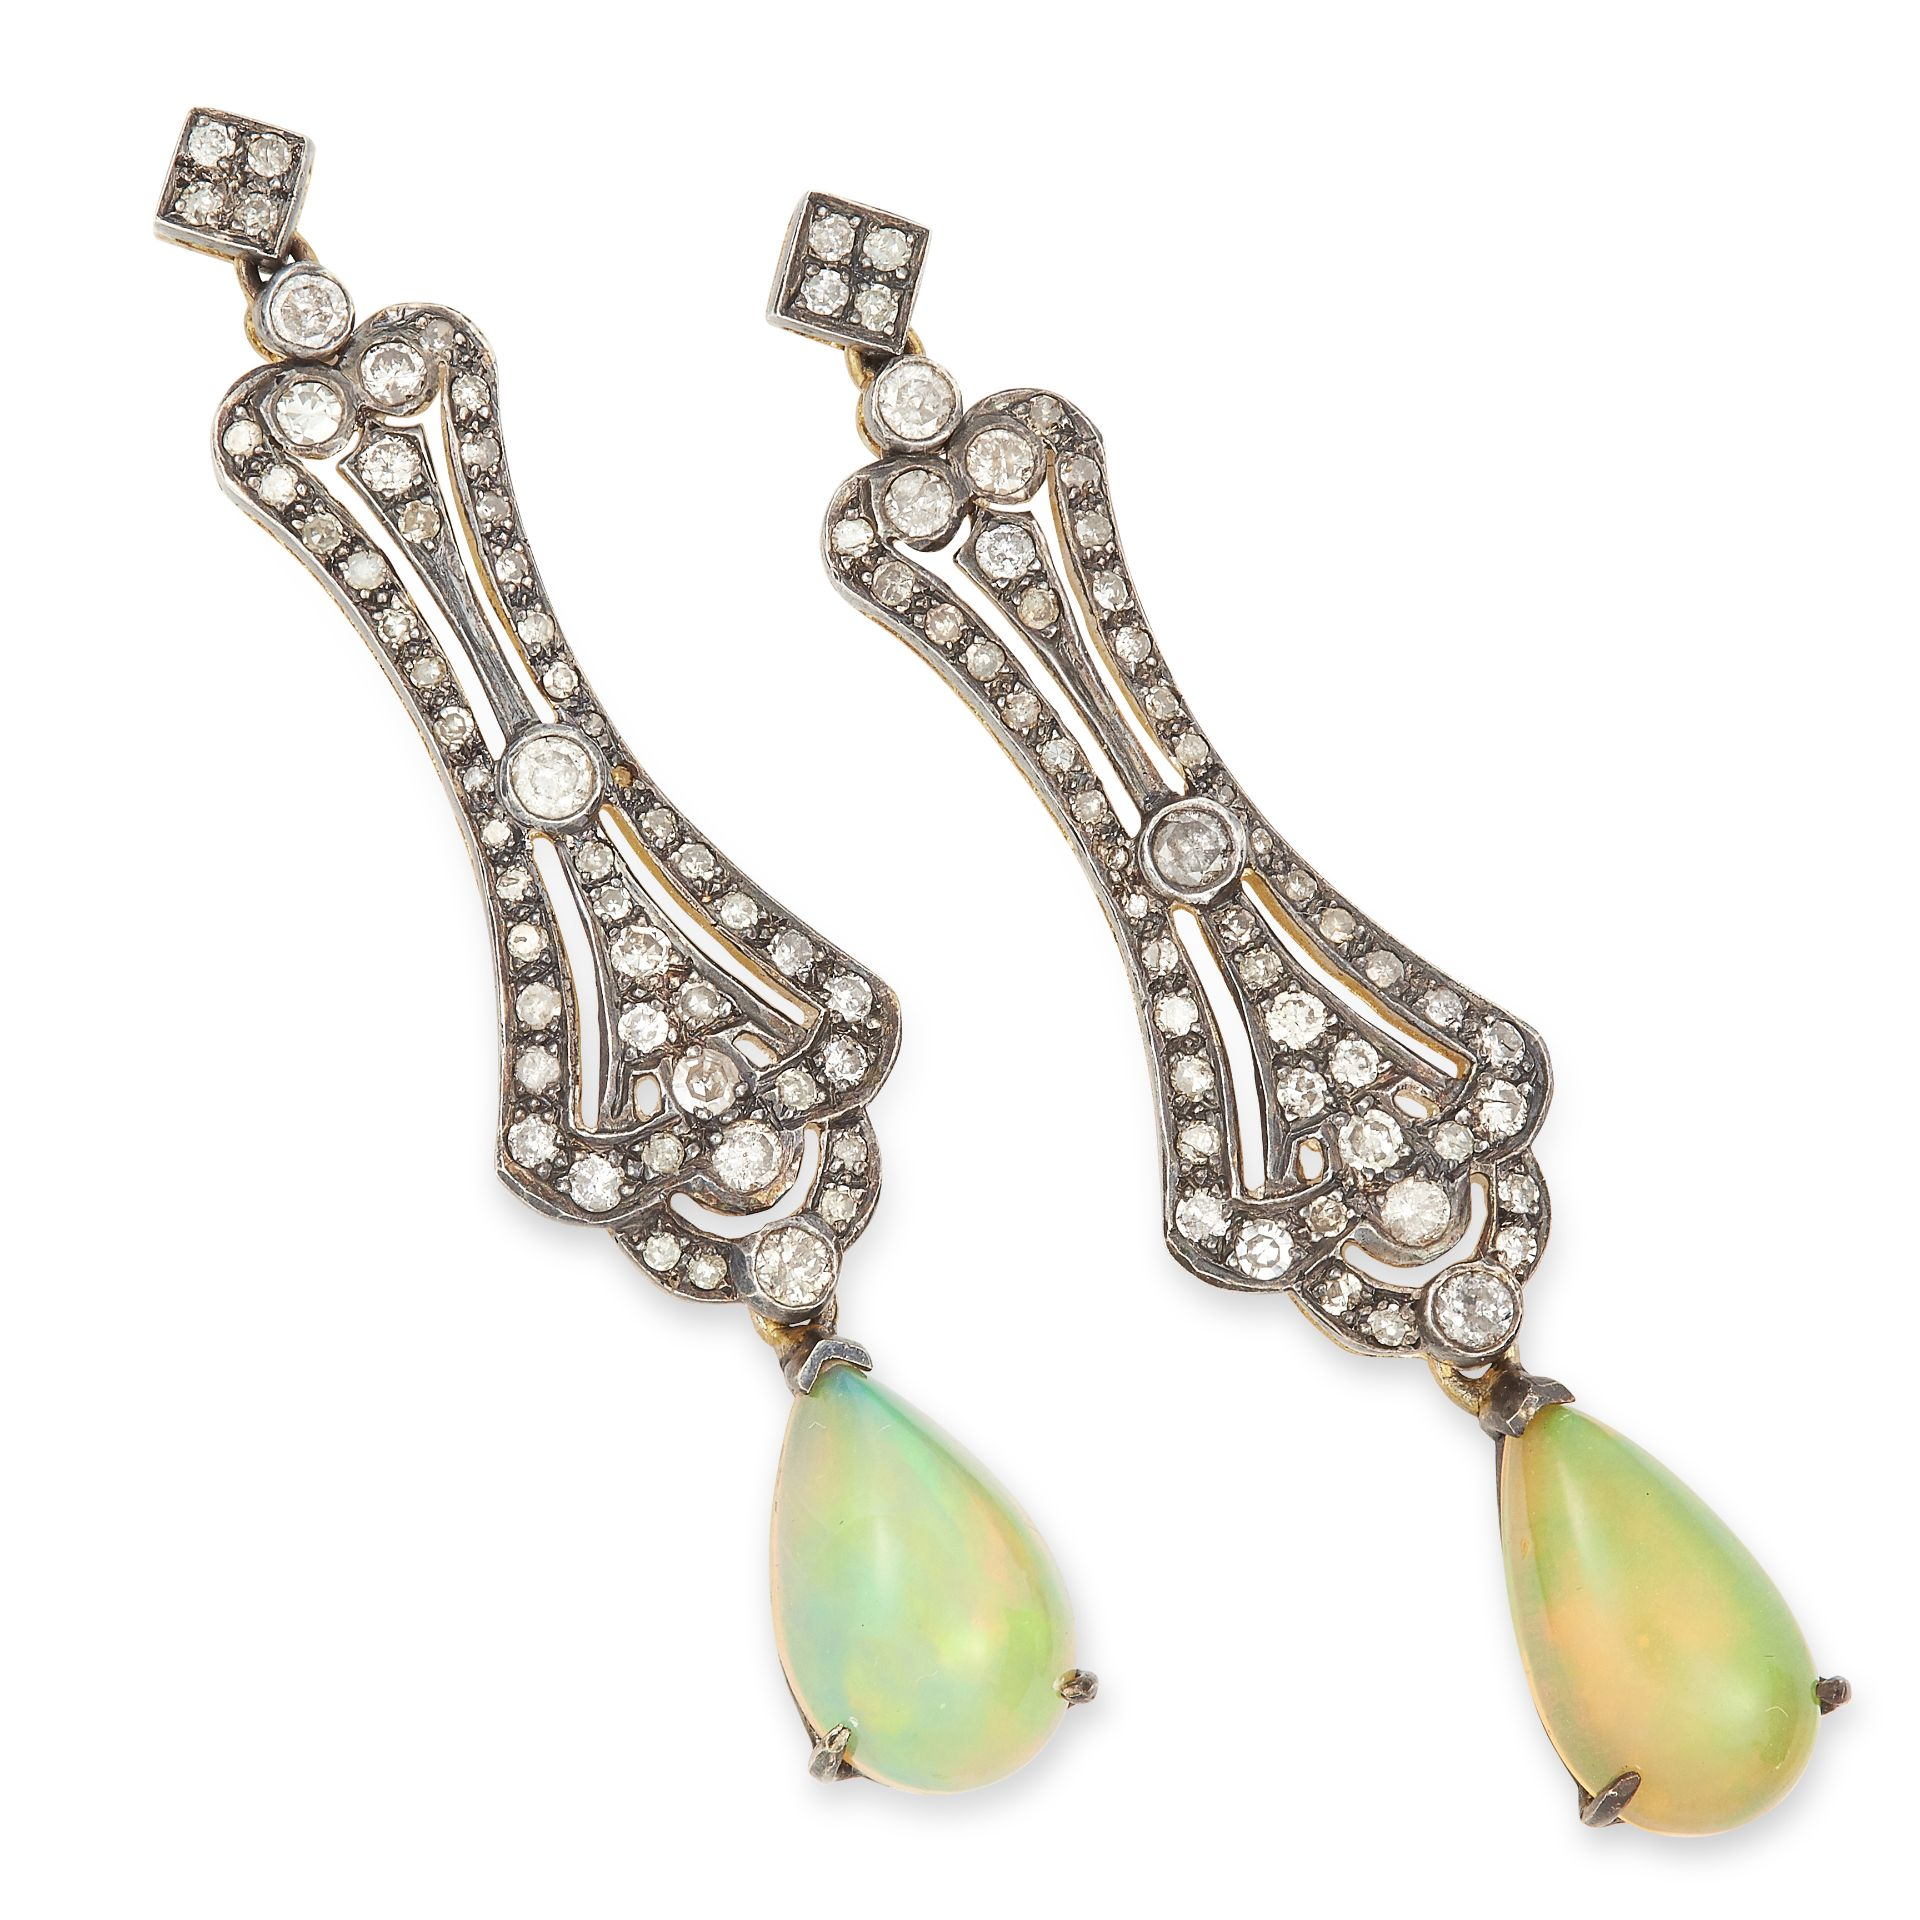 OPAL AND DIAMOND DROP EARRINGS each set with round cut diamonds suspending a cabochon opal drop, 4.